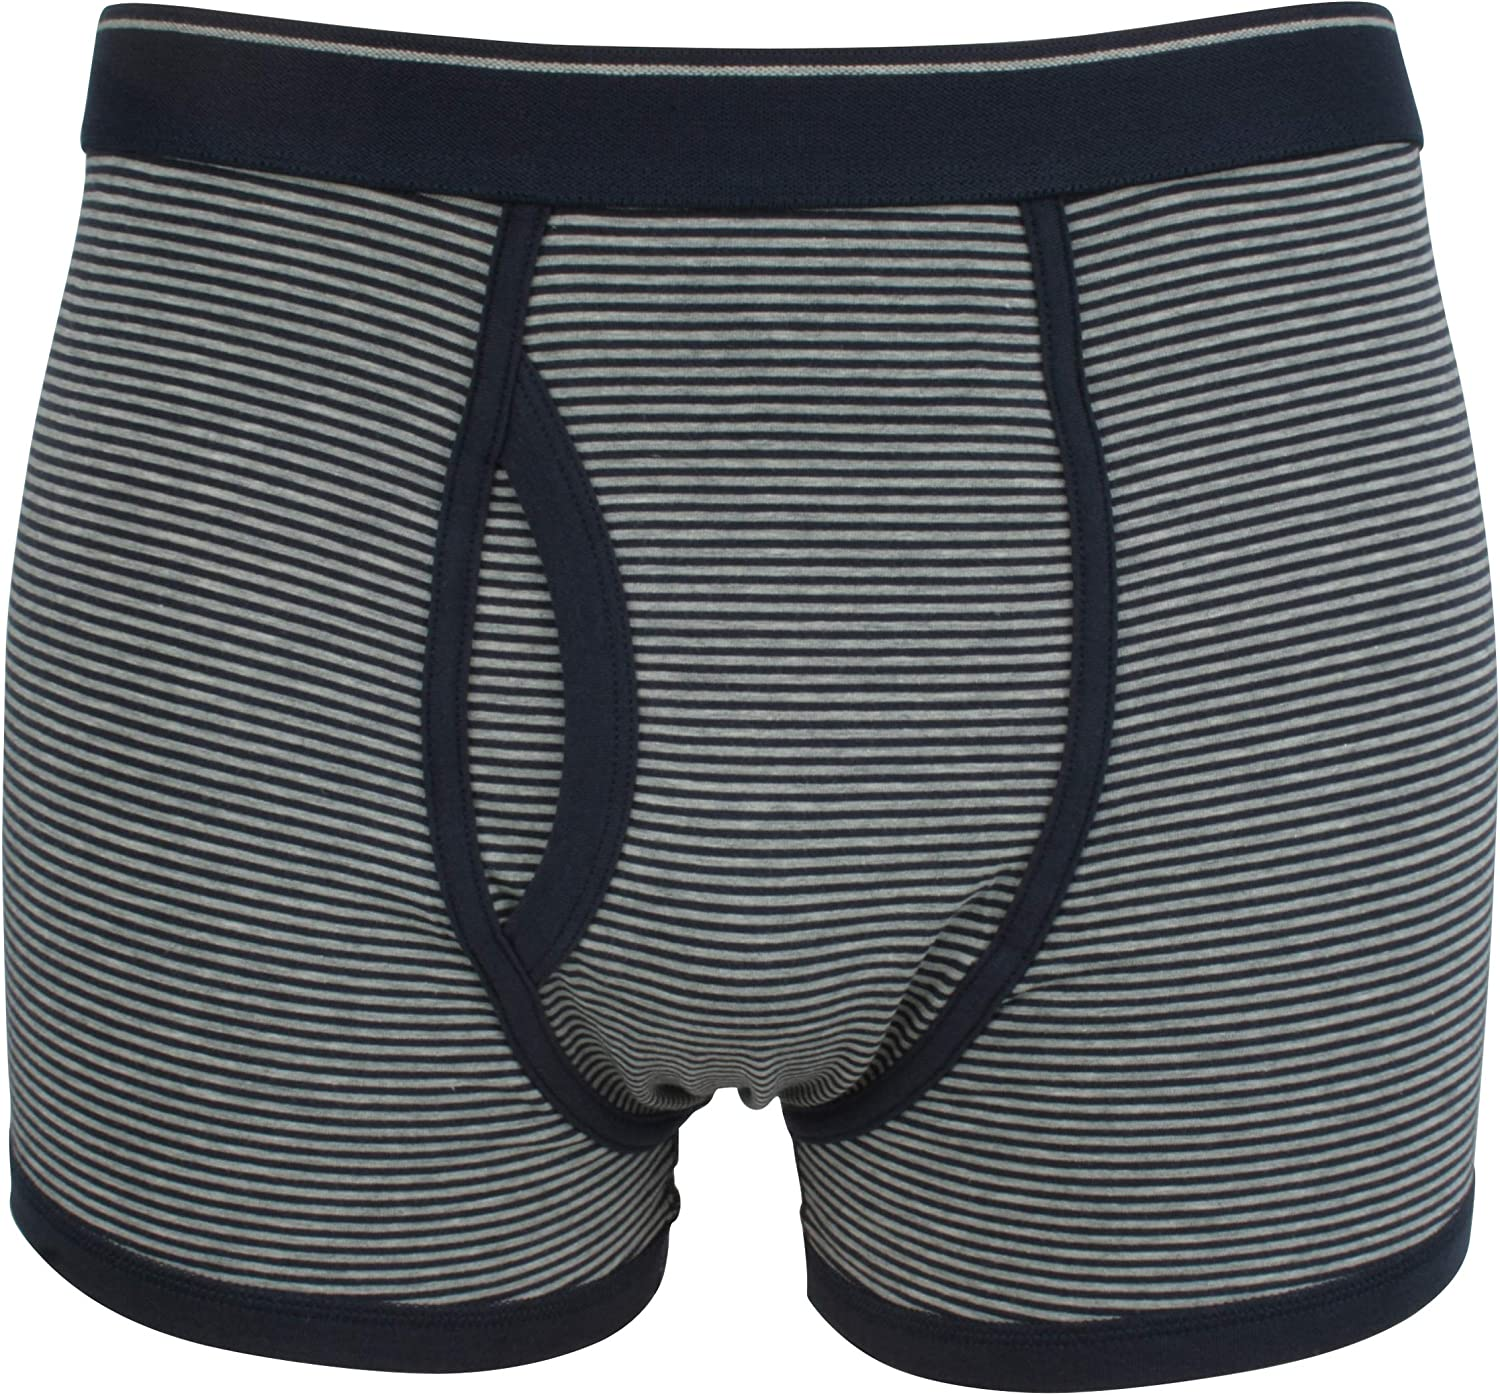 Ex-Store Mens Pack of 3 Cotton Jersey Keyhole Trunks